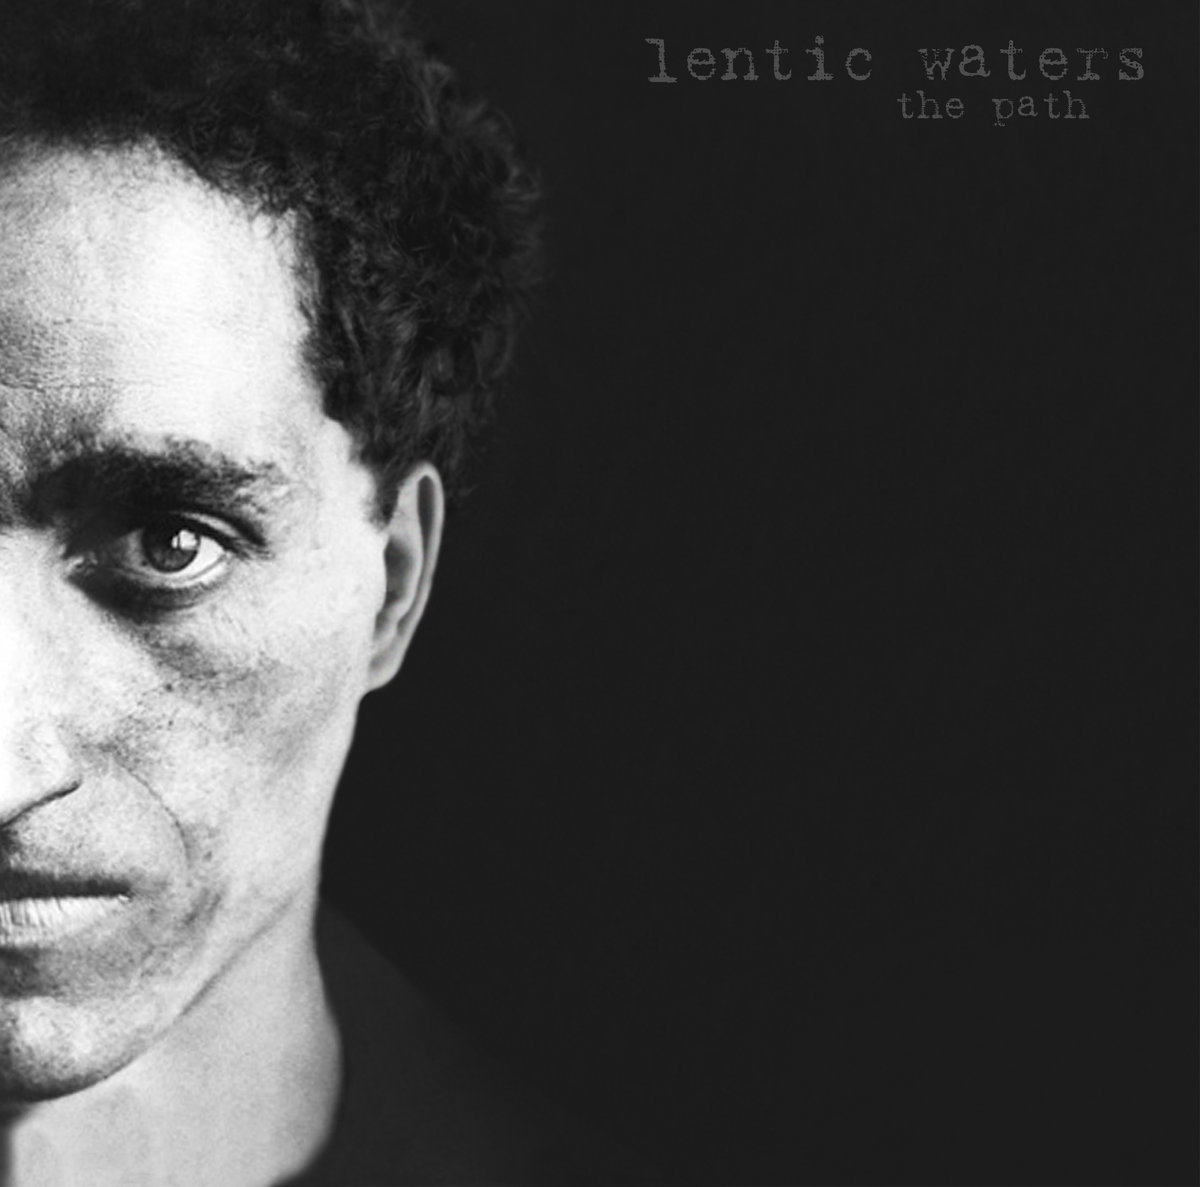 Lentic Waters - The path